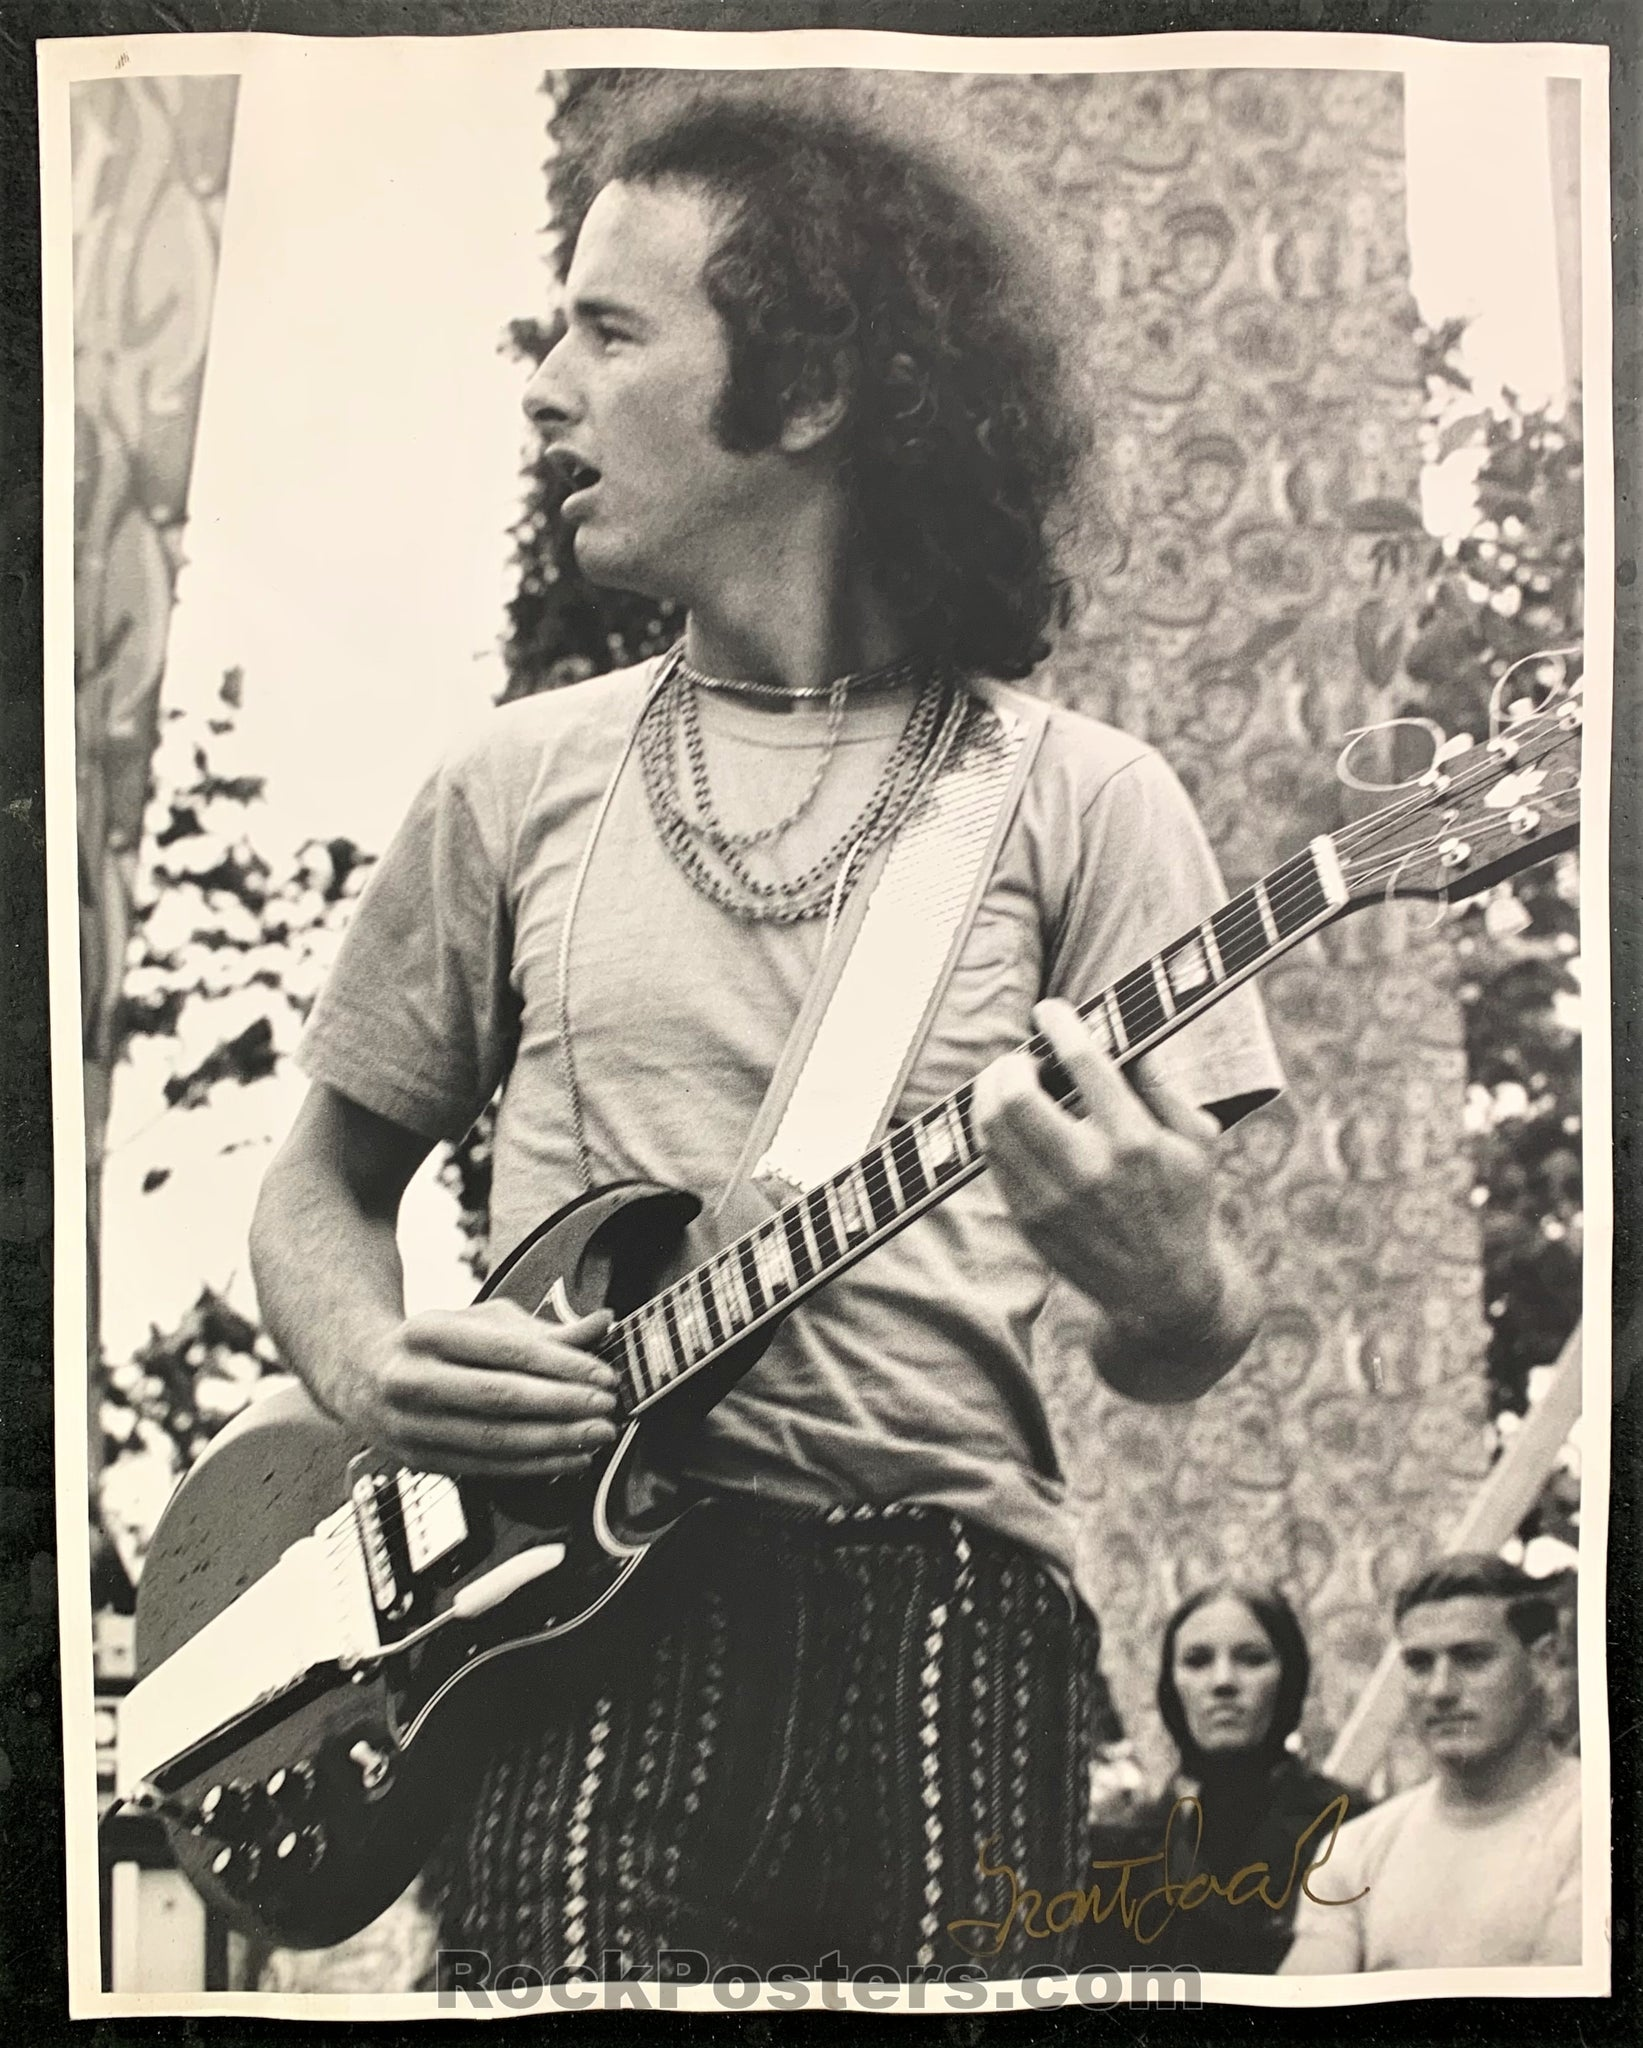 The Doors - Robby Krieger Concert Photograph - Grant Jacobs SIgned - Excellent